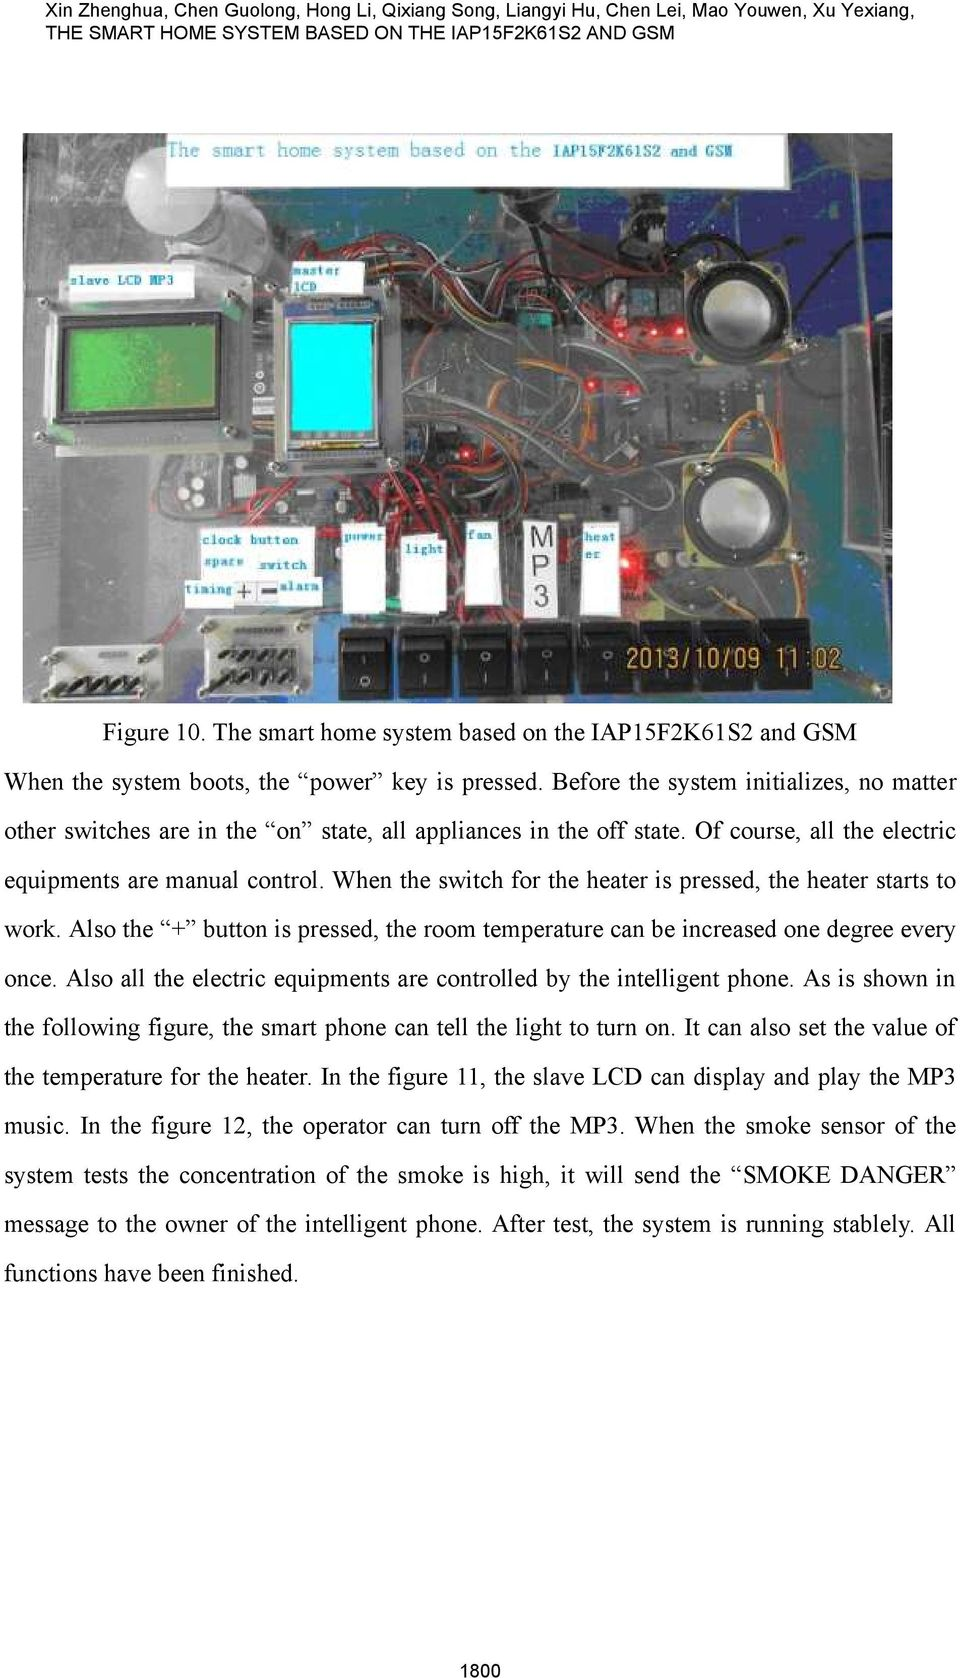 The Smart Home System Based On Iap15f2k61s2 And Gsm Pdf Smokesensor Circuit Combined With Zigbee Wsn Development Board Before Initializes No Matter Other Switches Are In State All